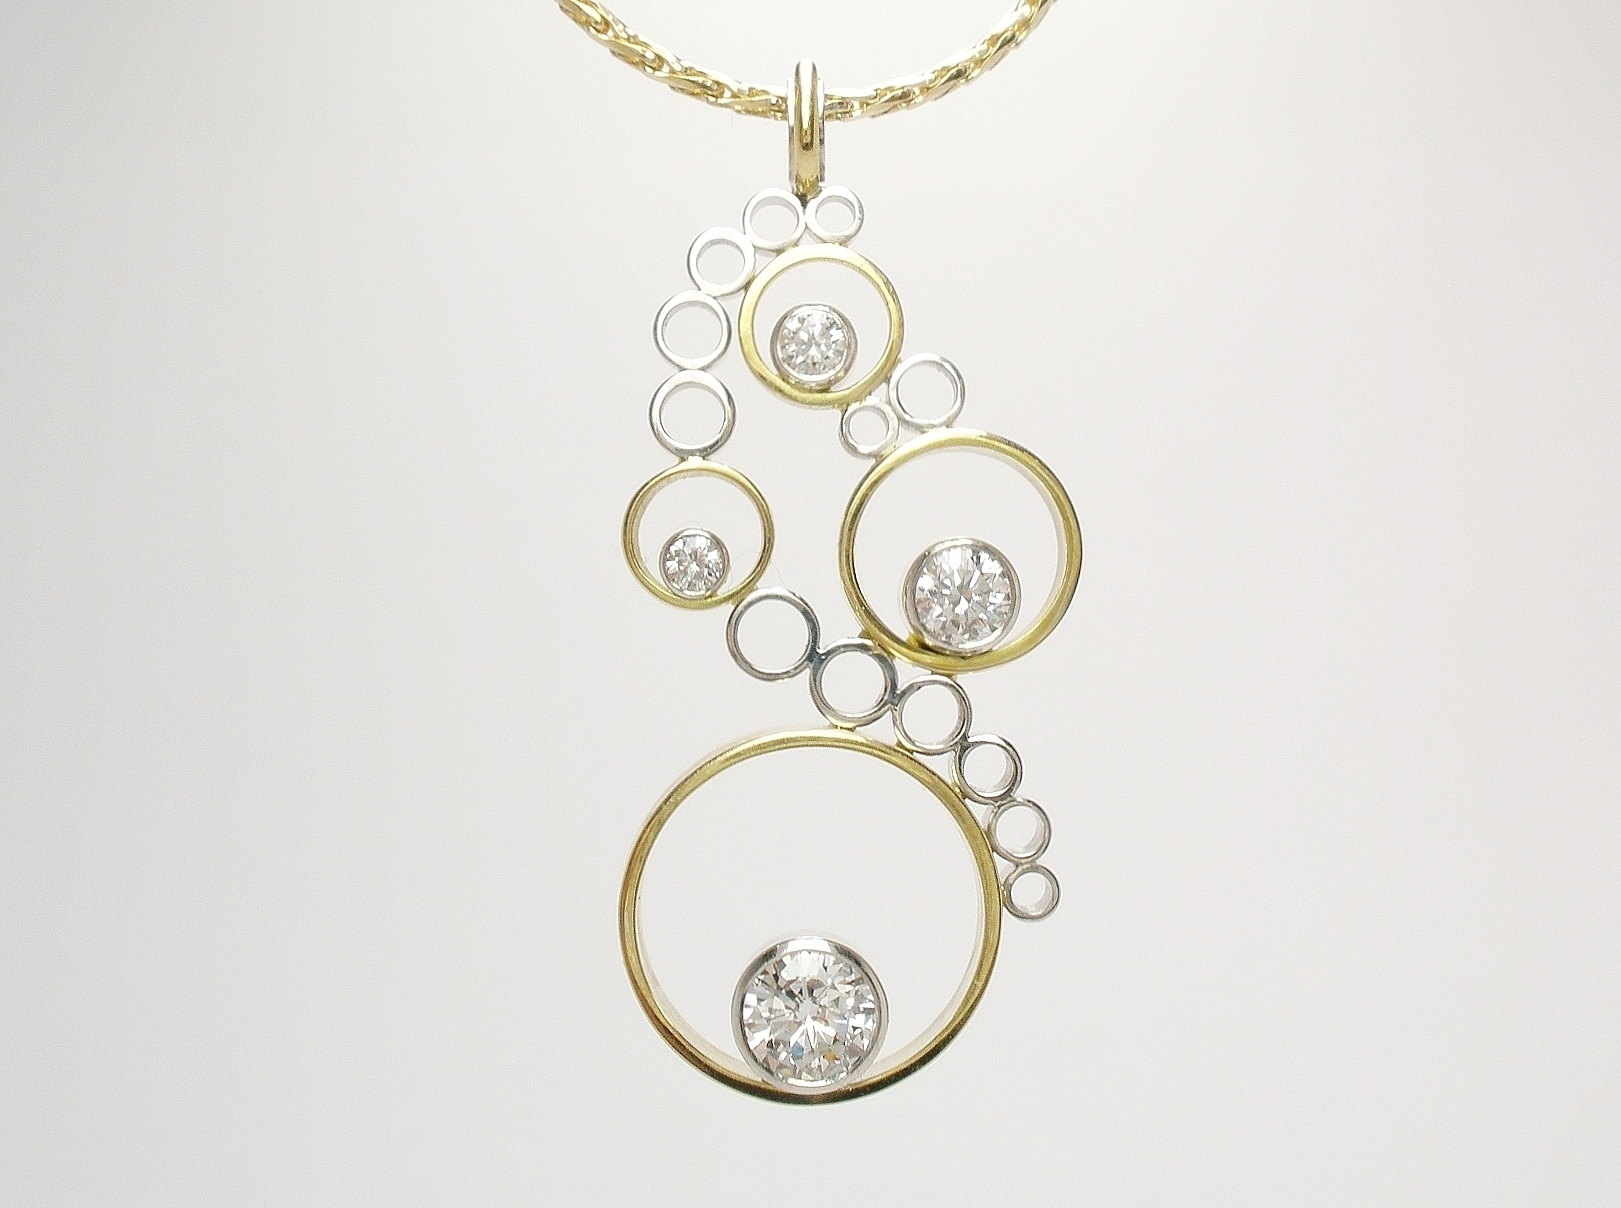 Diamond 4 stone 'Tumble' style pendant mounted in 18ct. yellow gold and platinum.